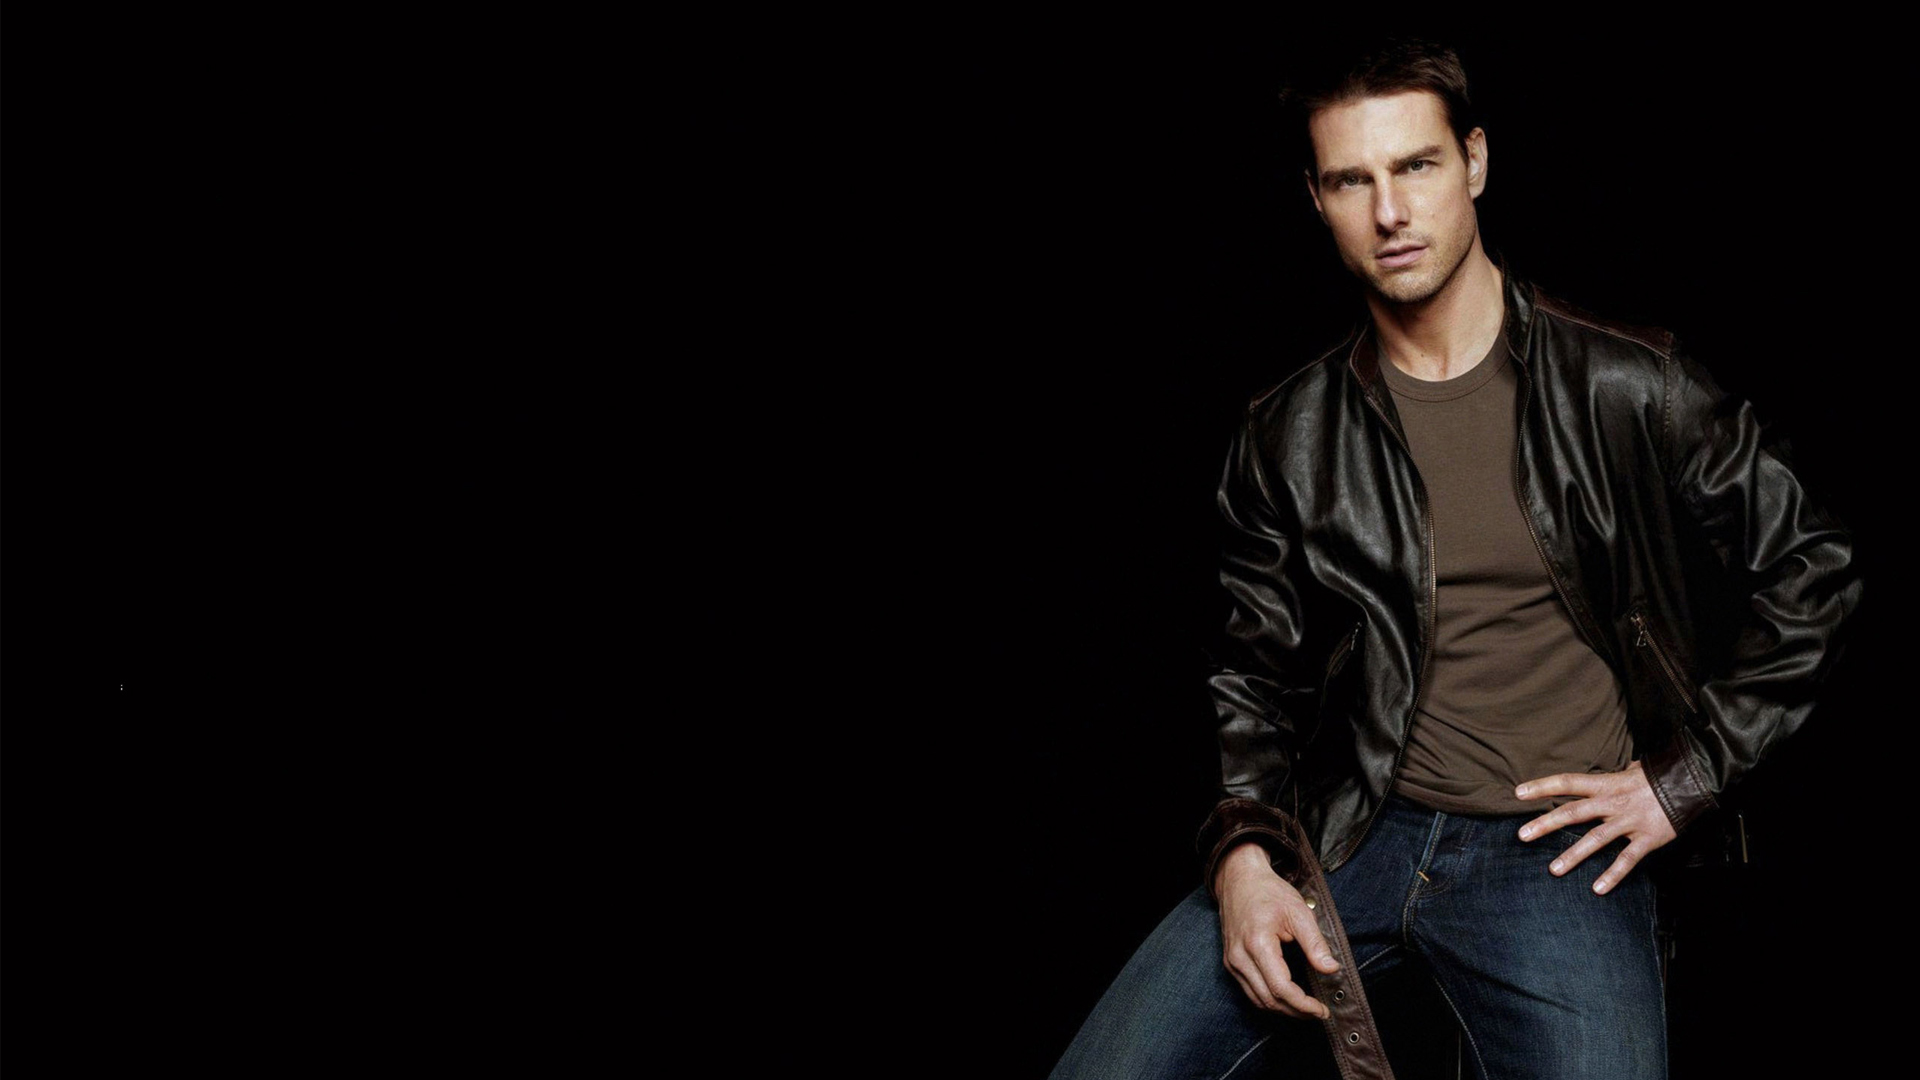 HD Tom Cruise Wallpapers HdCoolWallpapersCom 1920x1080